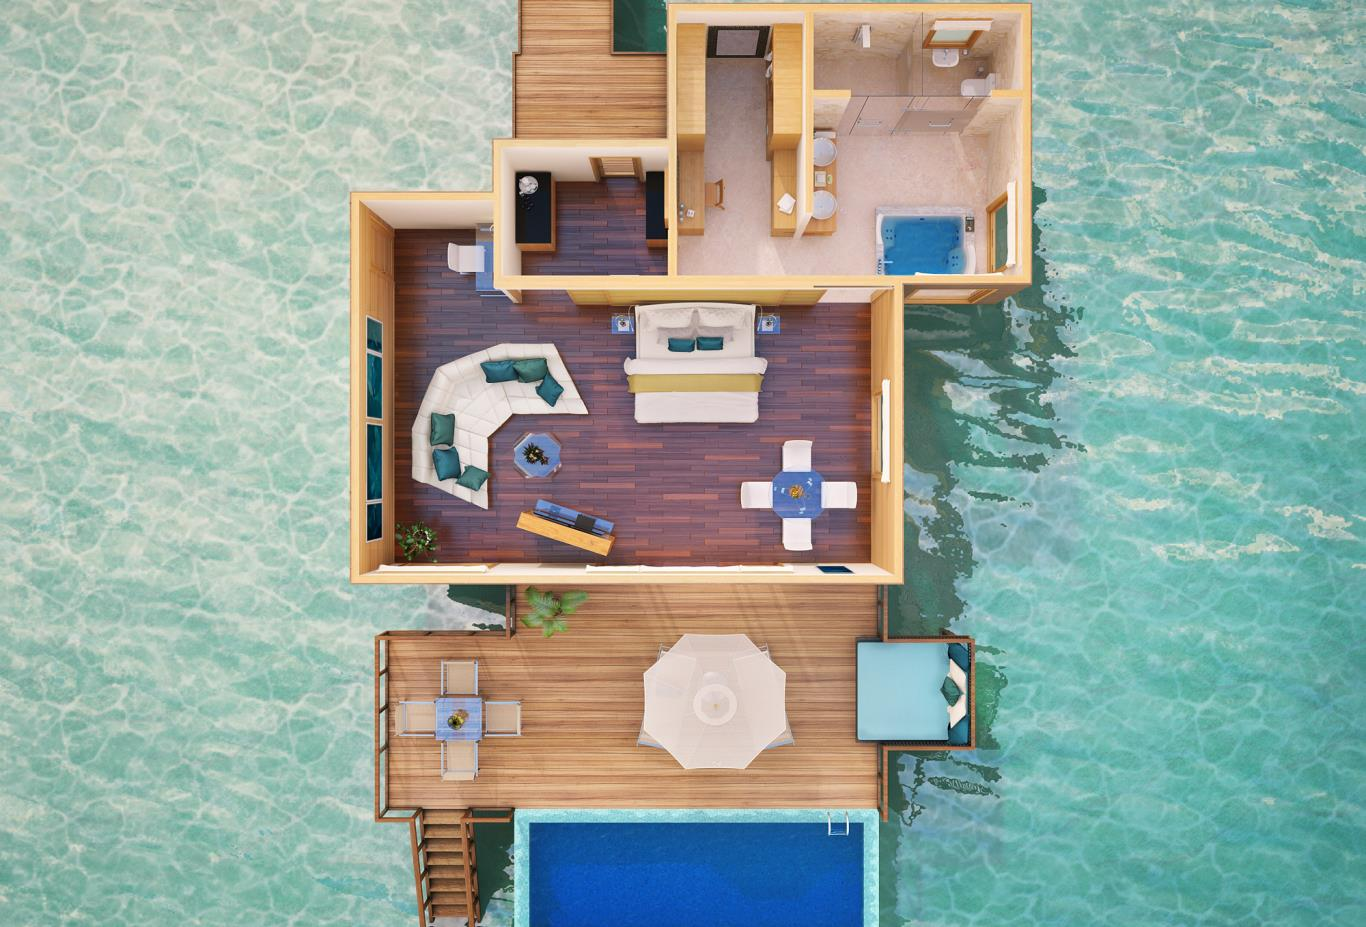 Premier Water Villa Floorplan